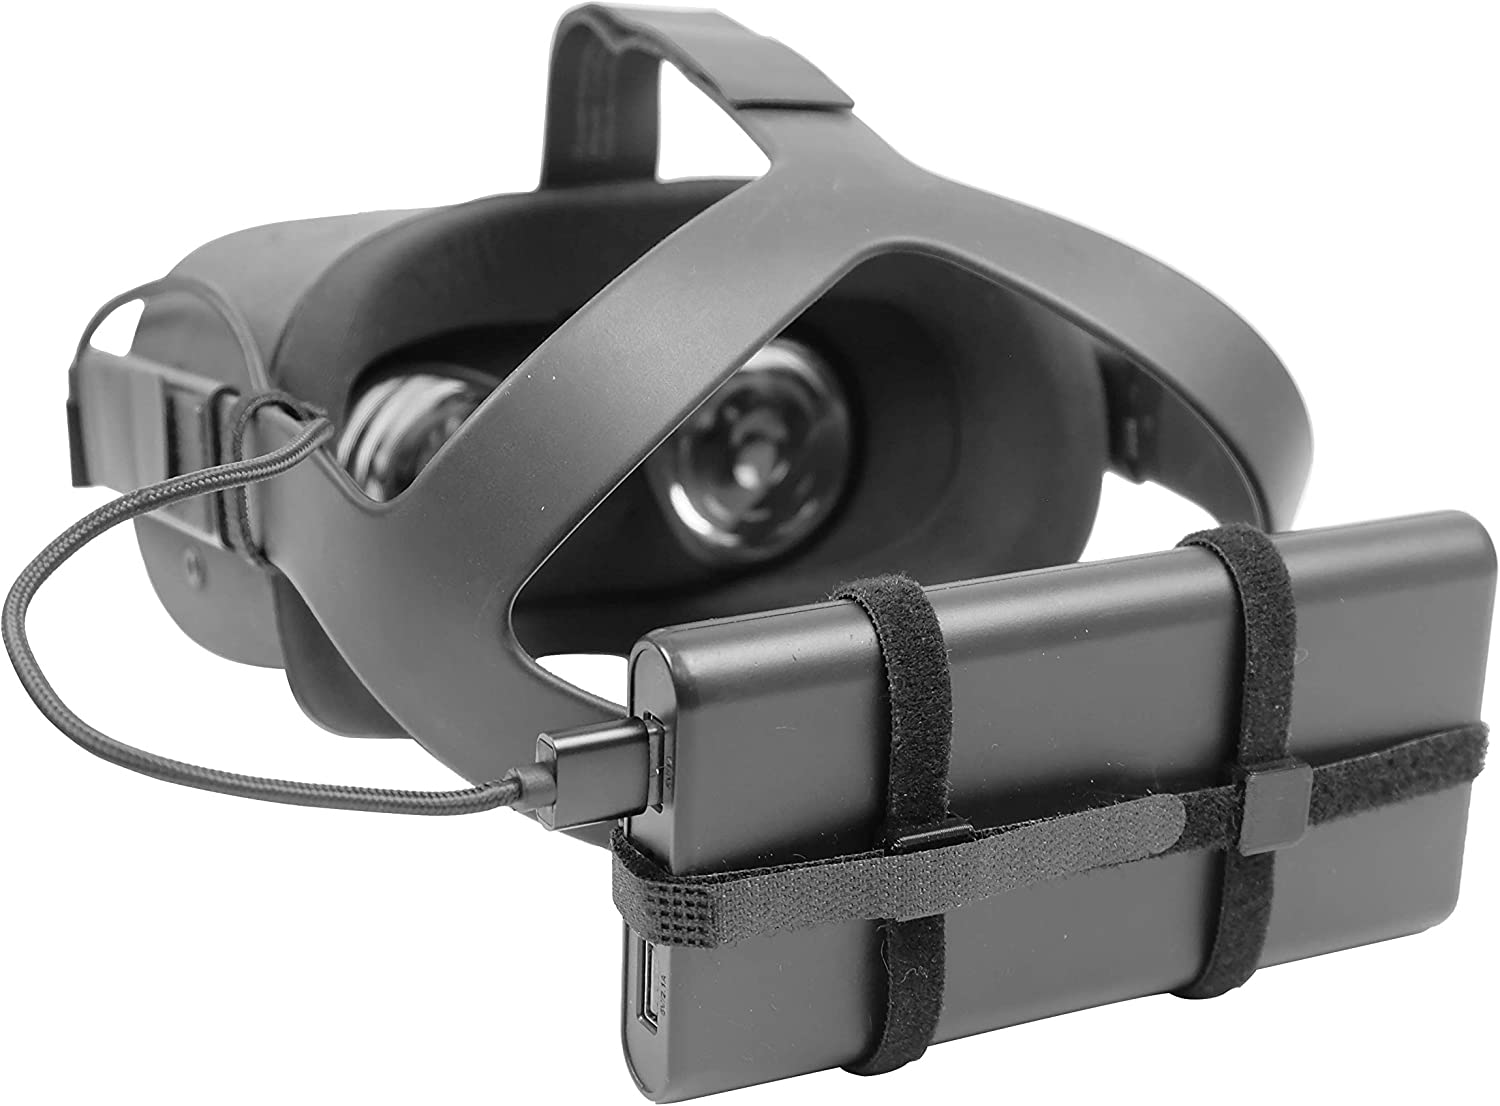 DeadEyeVR Universal Battery Kit - Battery Holder Clips That Fit Any USB Power Pack Bank Accessory for The Oculus Quest